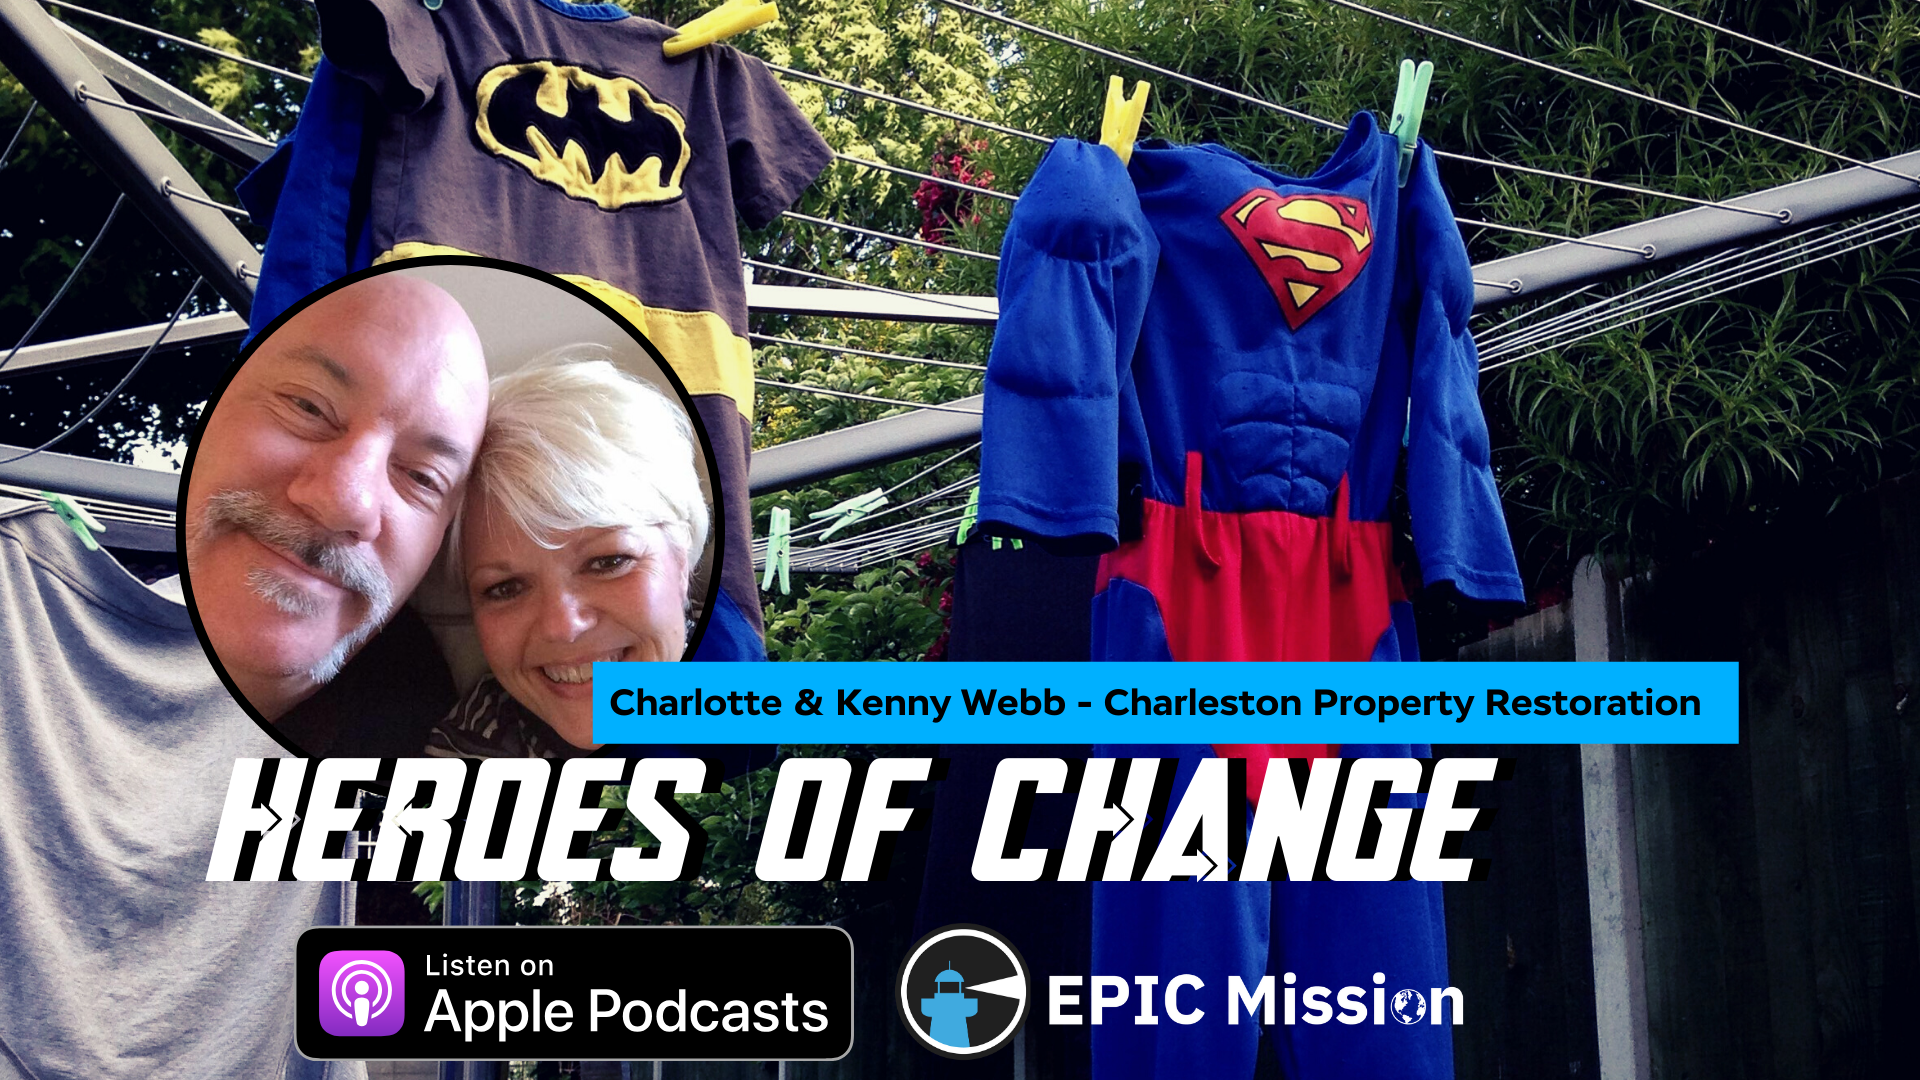 Heroes of Change: Kenny and Charlotte Webb of Charleston Property Restoration